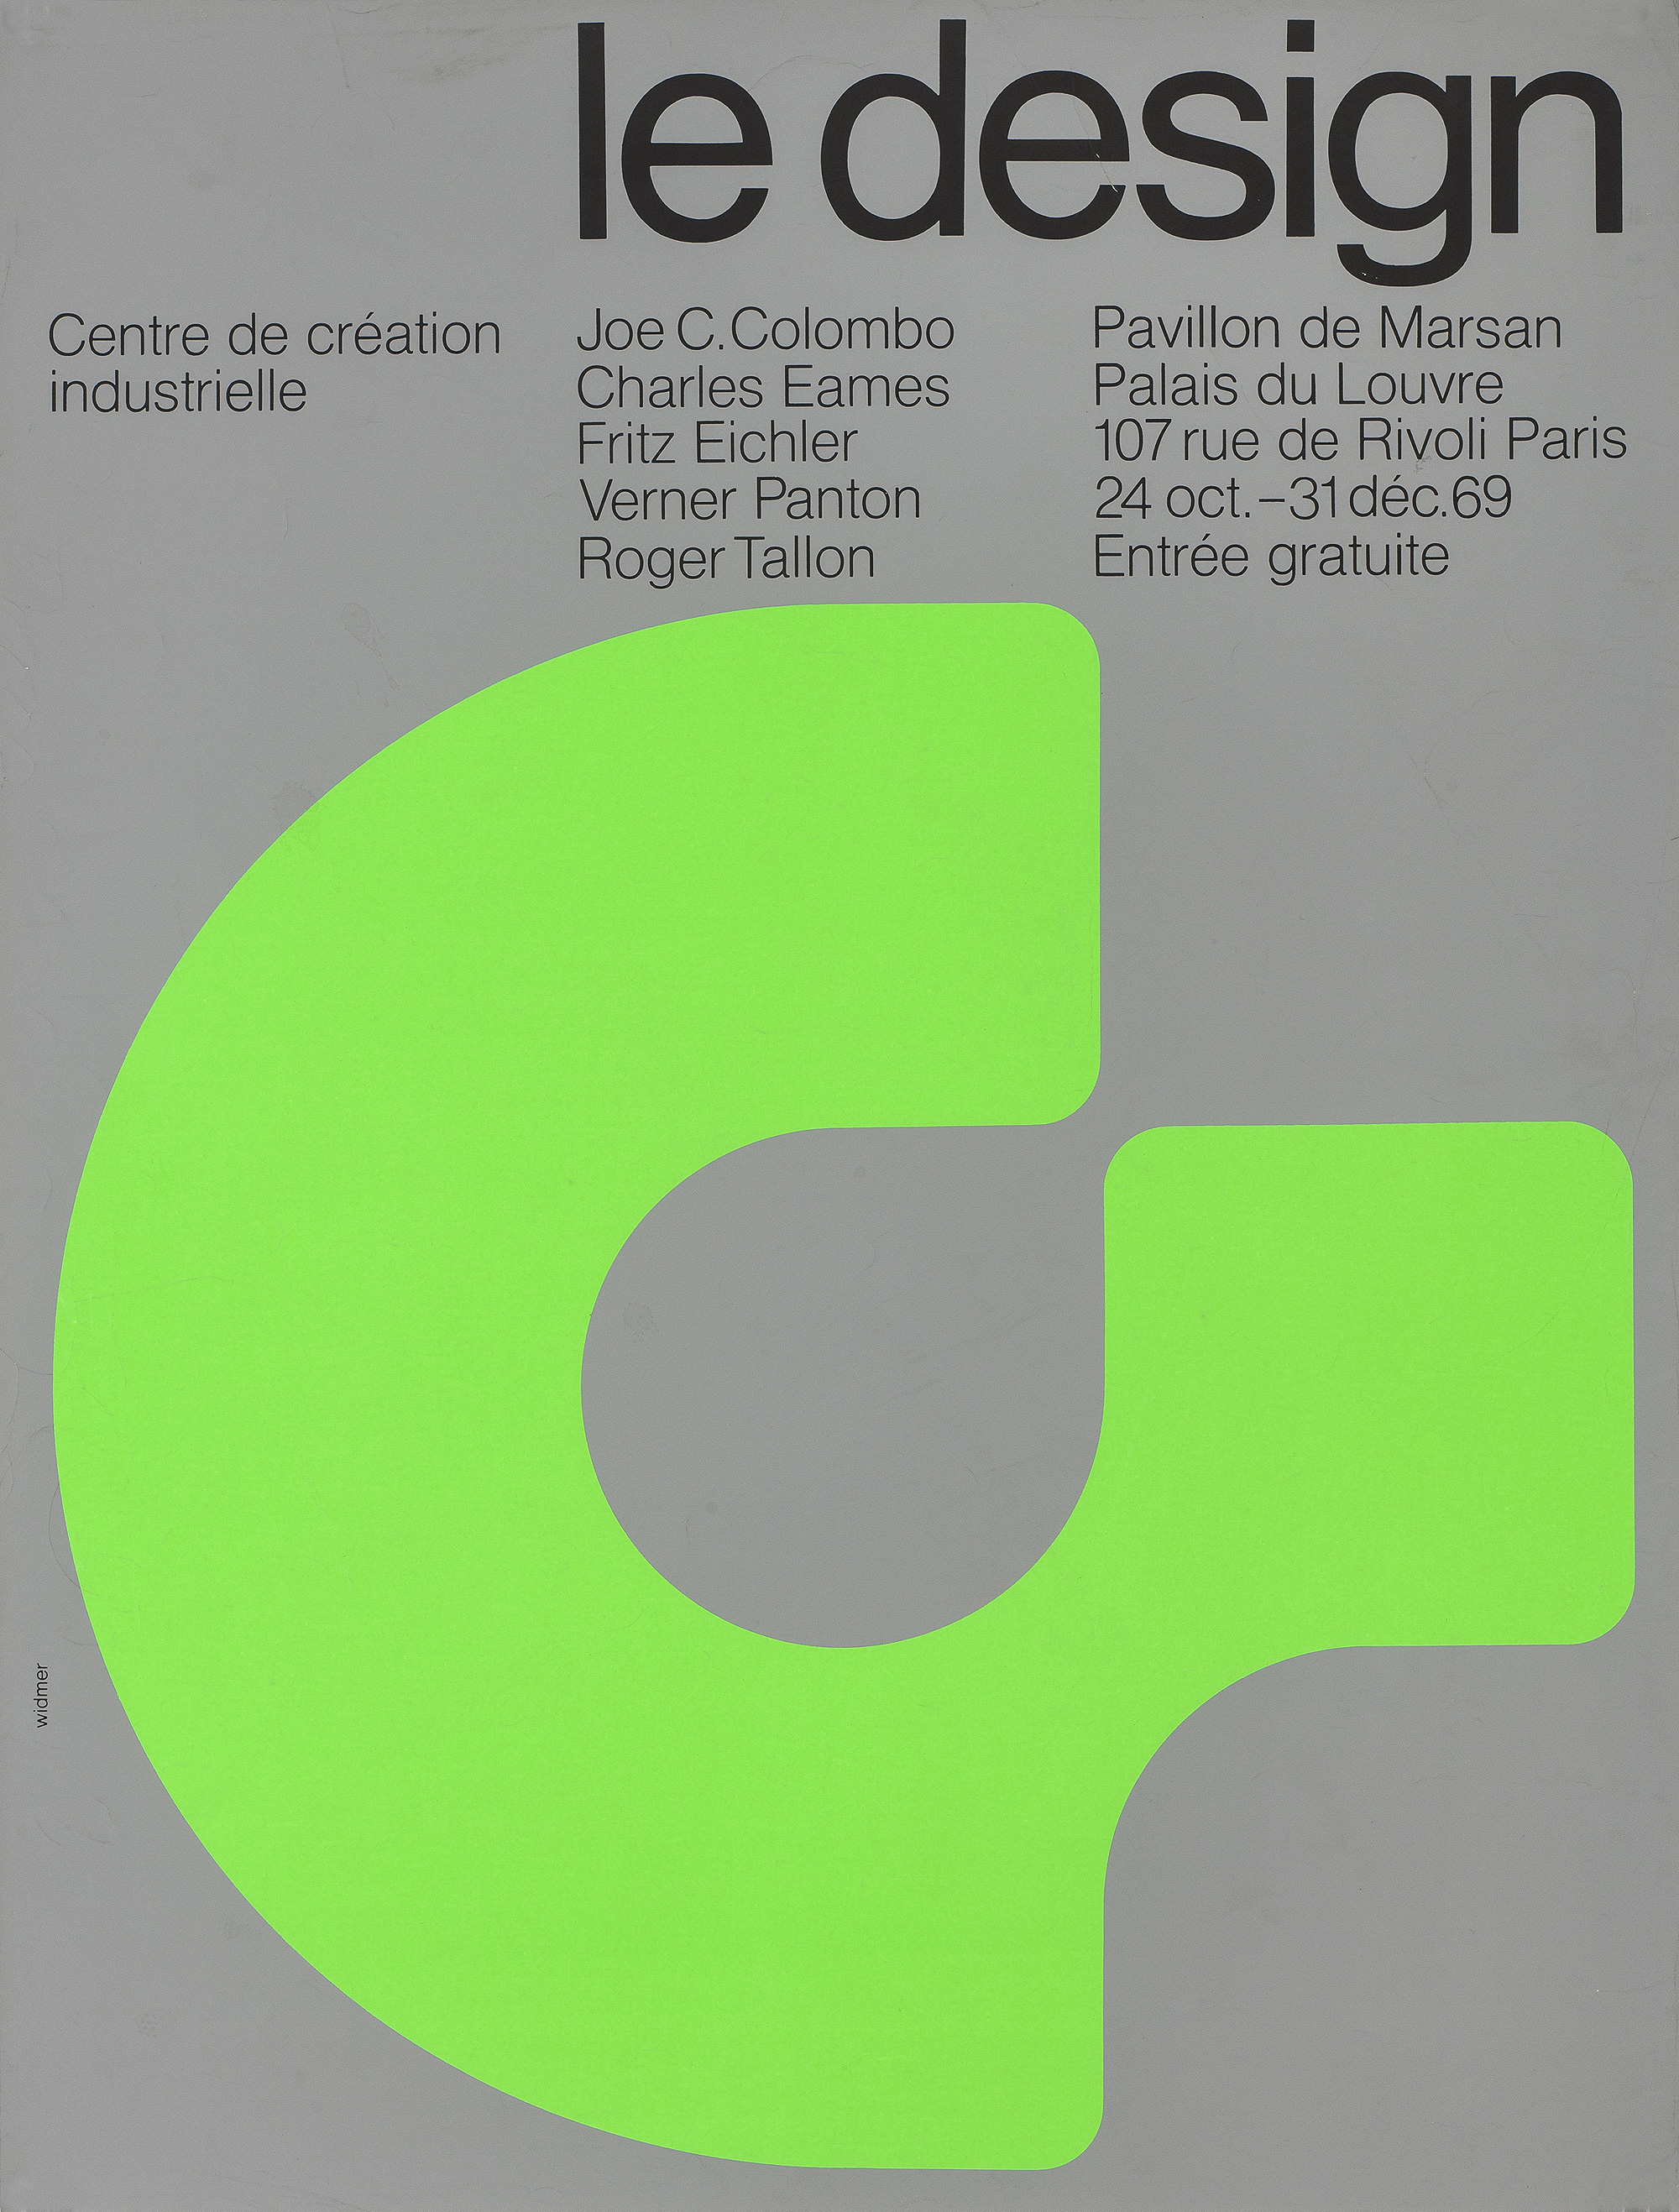 Charles Eames Poster The Design. 24 October to 31 December 1969 »Jean Widmer 1969. Paper, color screen printing. Sponsored by the Industrial Design Center